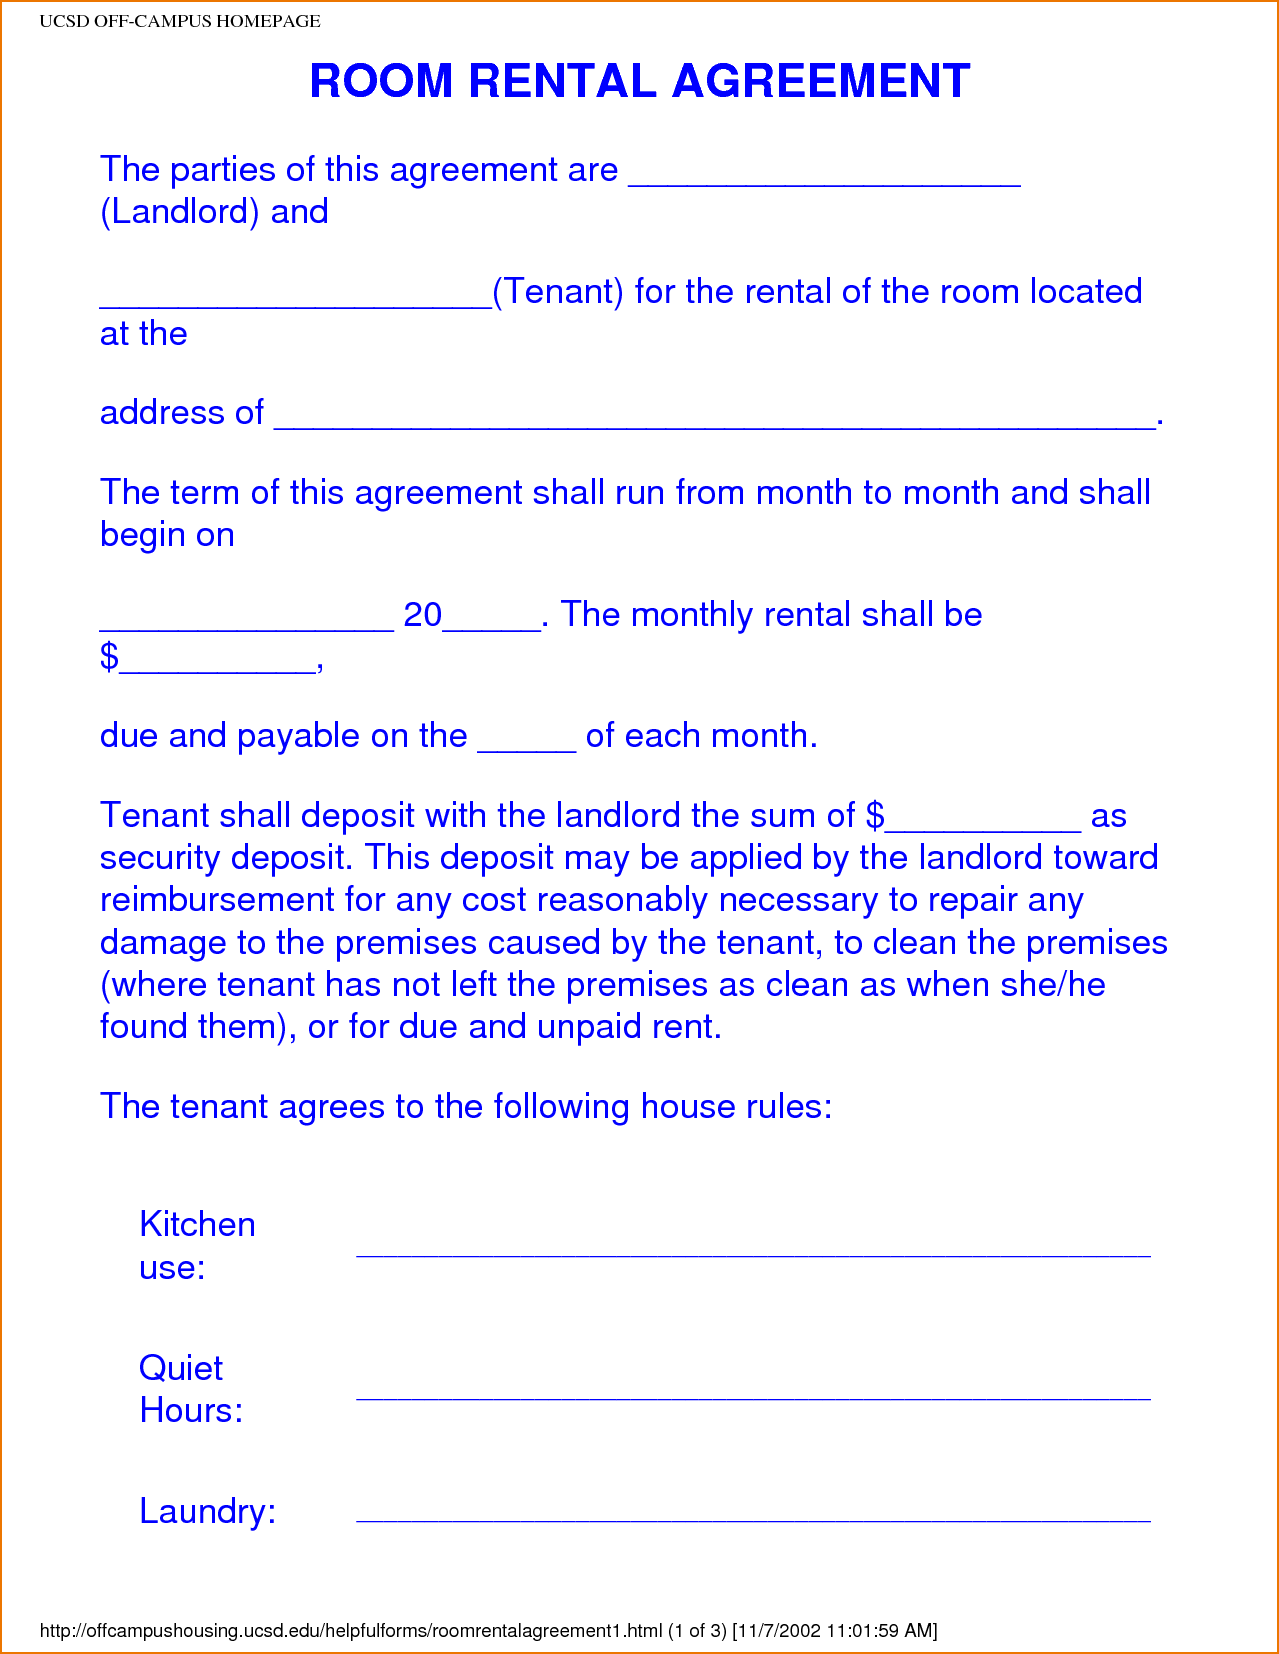 Image Result For College Roommate Agreement Template Room Rental